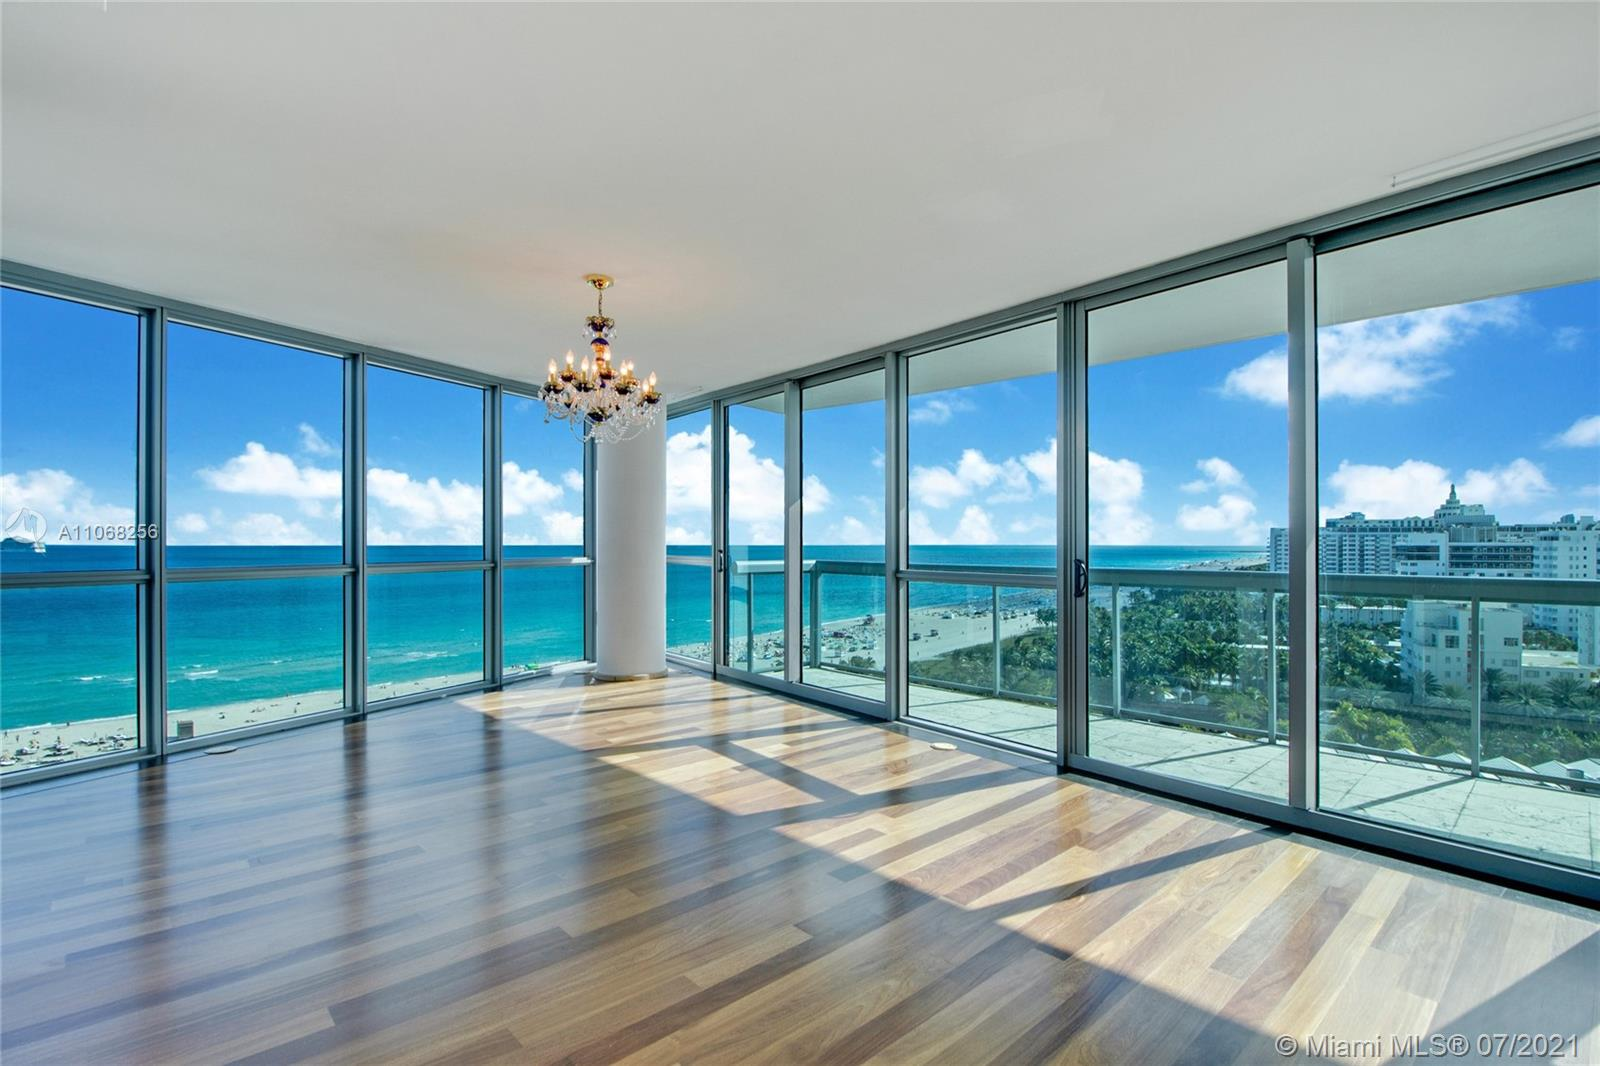 101 20th St, Unit #1808 Luxury Real Estate